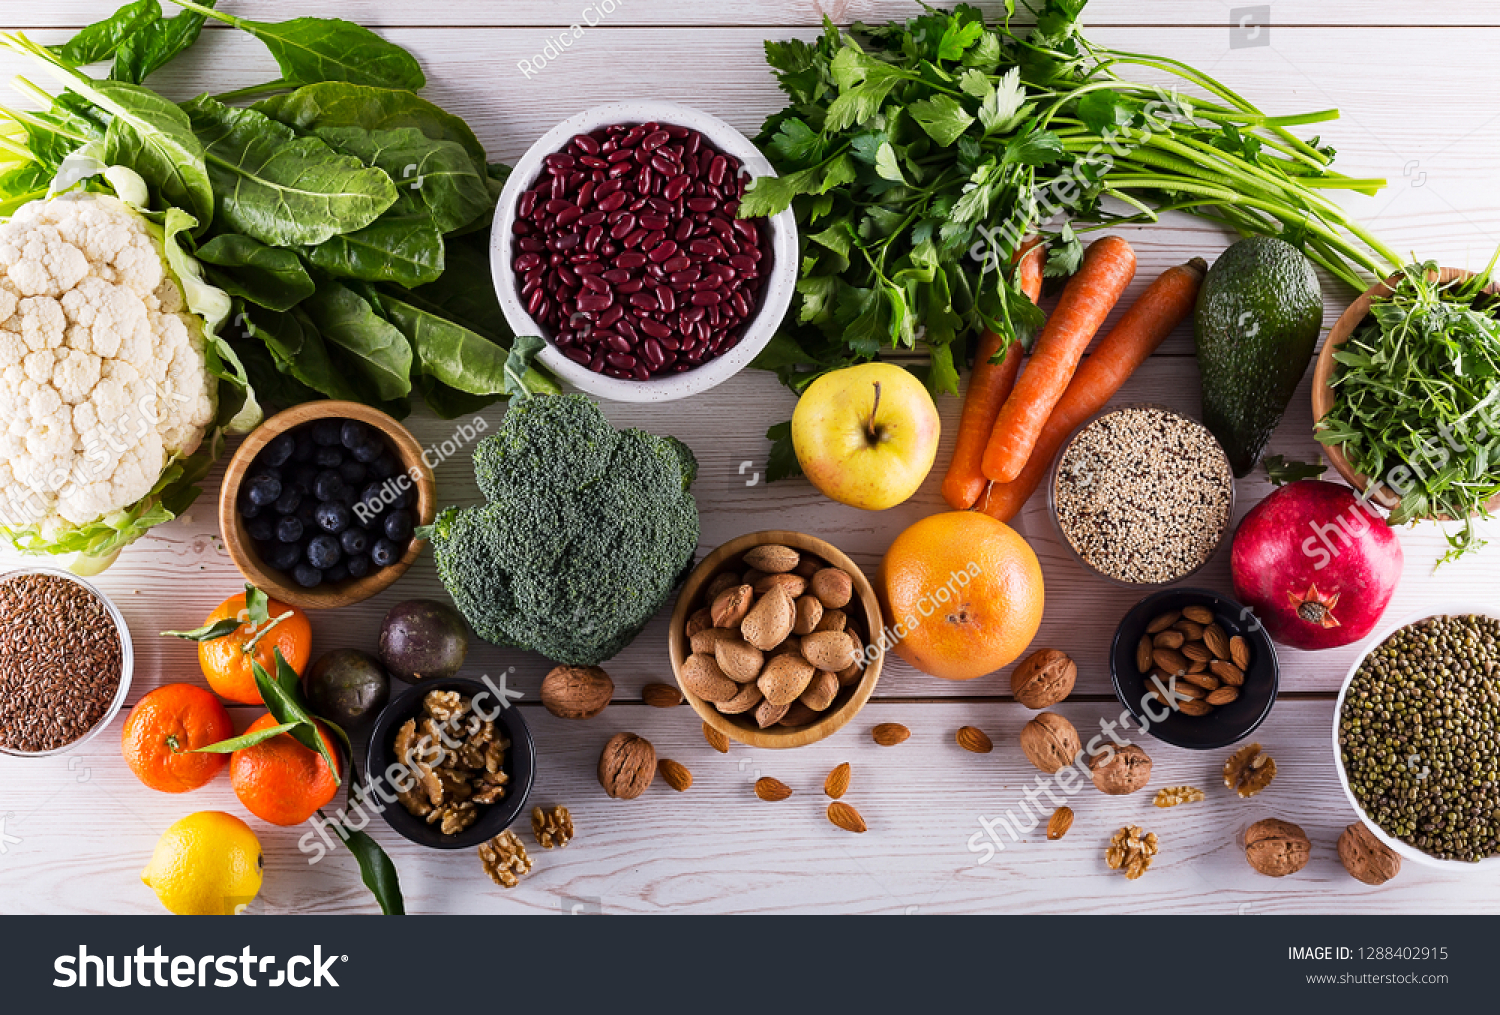 Healthy food clean eating : fruit, vegetable, seeds, superfood, cereals, leaf vegetable on black wood background with copy space, top view. #1288402915